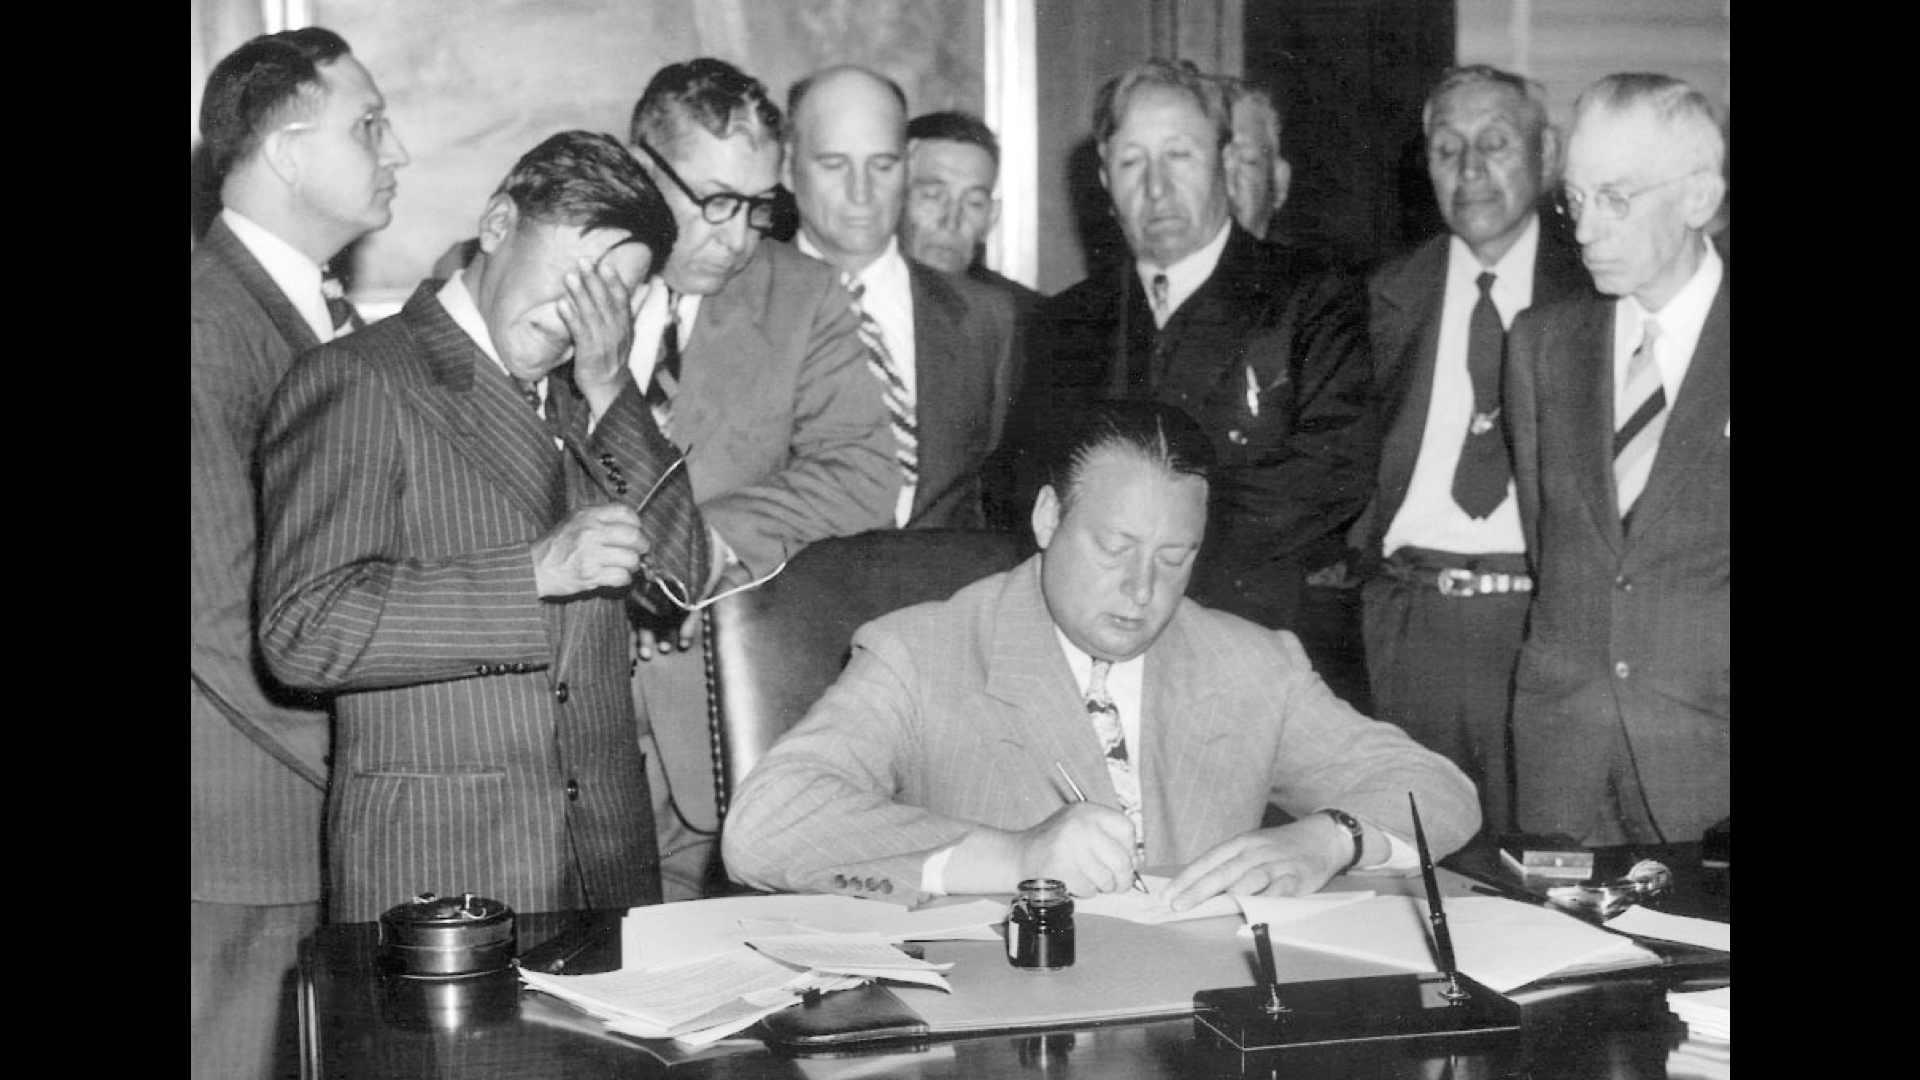 U.S. officials and representatives of the Three Affiliated Tribes (Hidatsa, Mandan, and Arikara) sign the Garrison Dam agreement on May 20, 1948. Secretary of the Interior Julius Krug writing his name while tribal chairman George Gillette sobs into his hand.